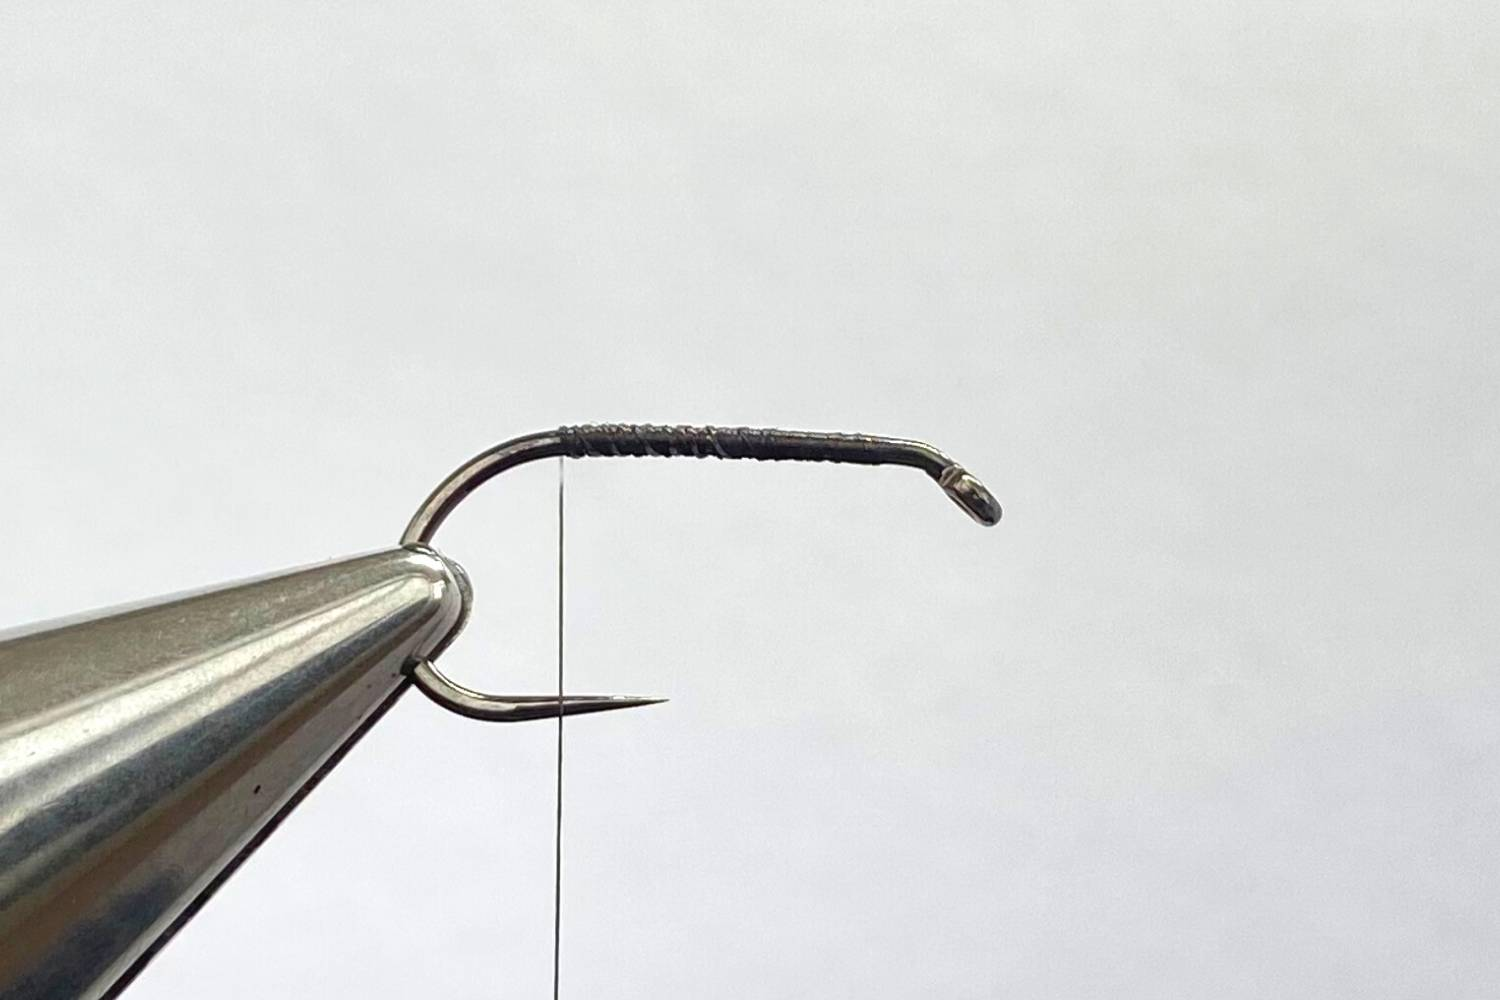 How to tie a Damselfly Nymph fly step 2